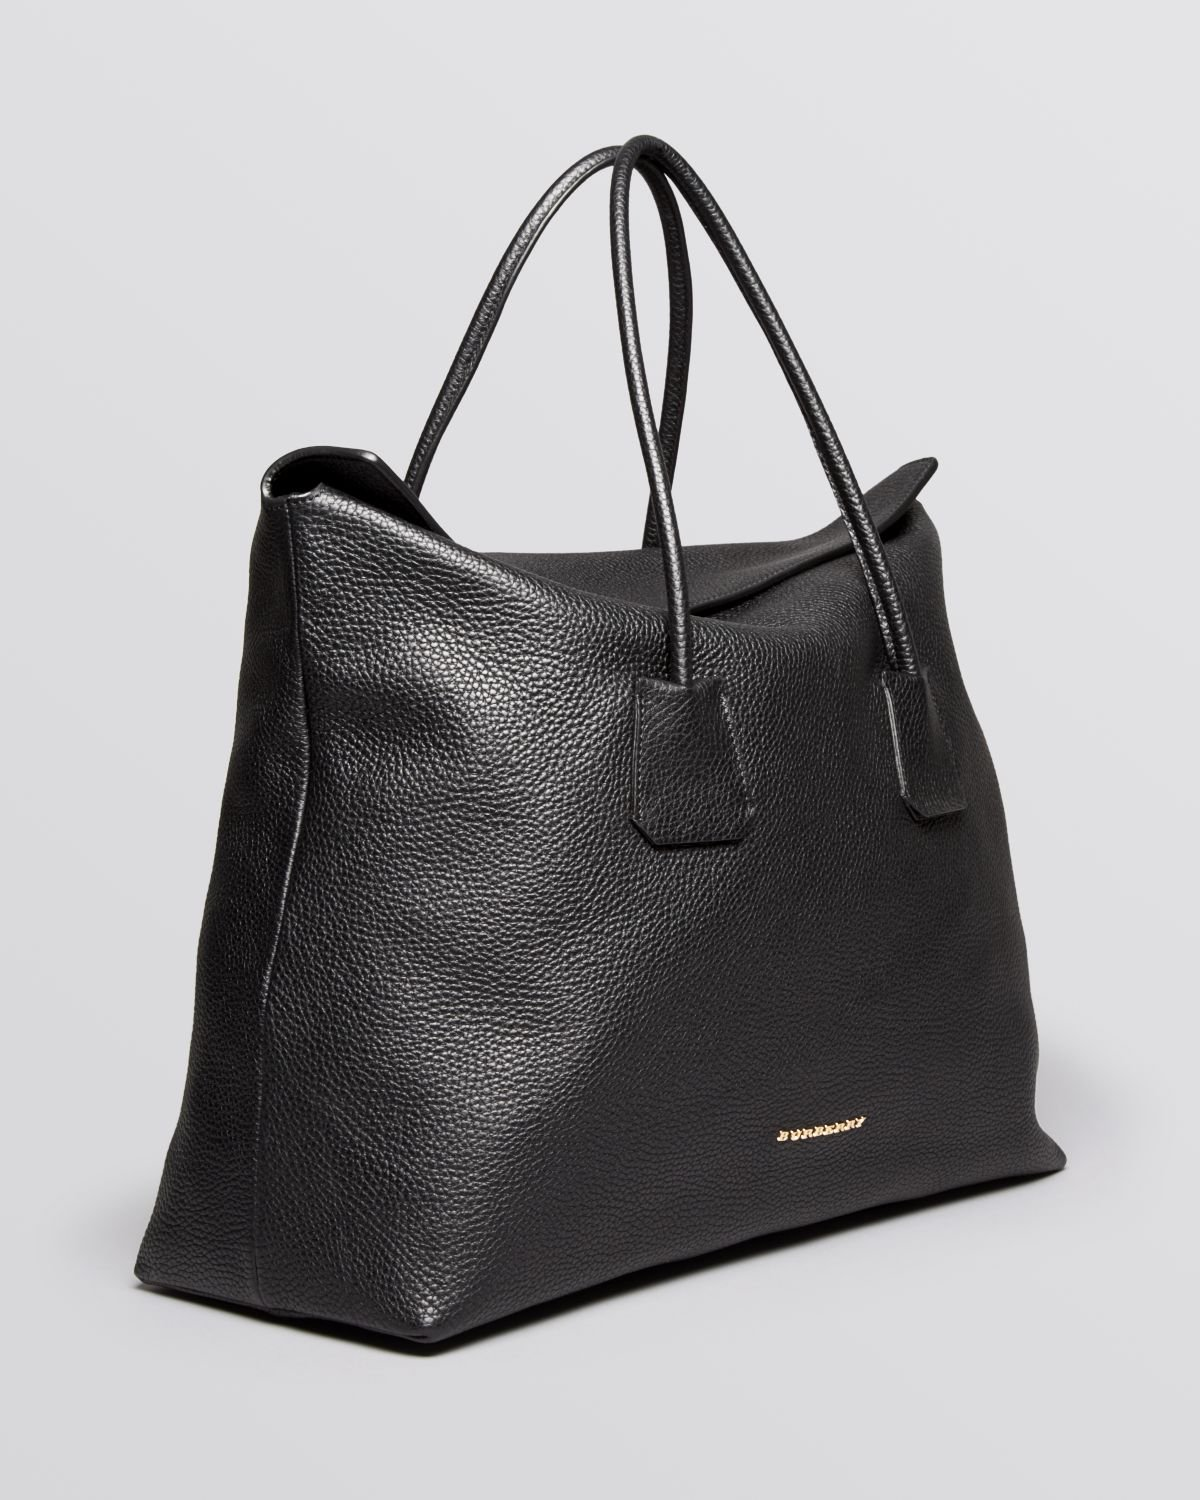 39fbc99286b7 Lyst - Burberry Tote London Grainy Leather Large Baynard in Black